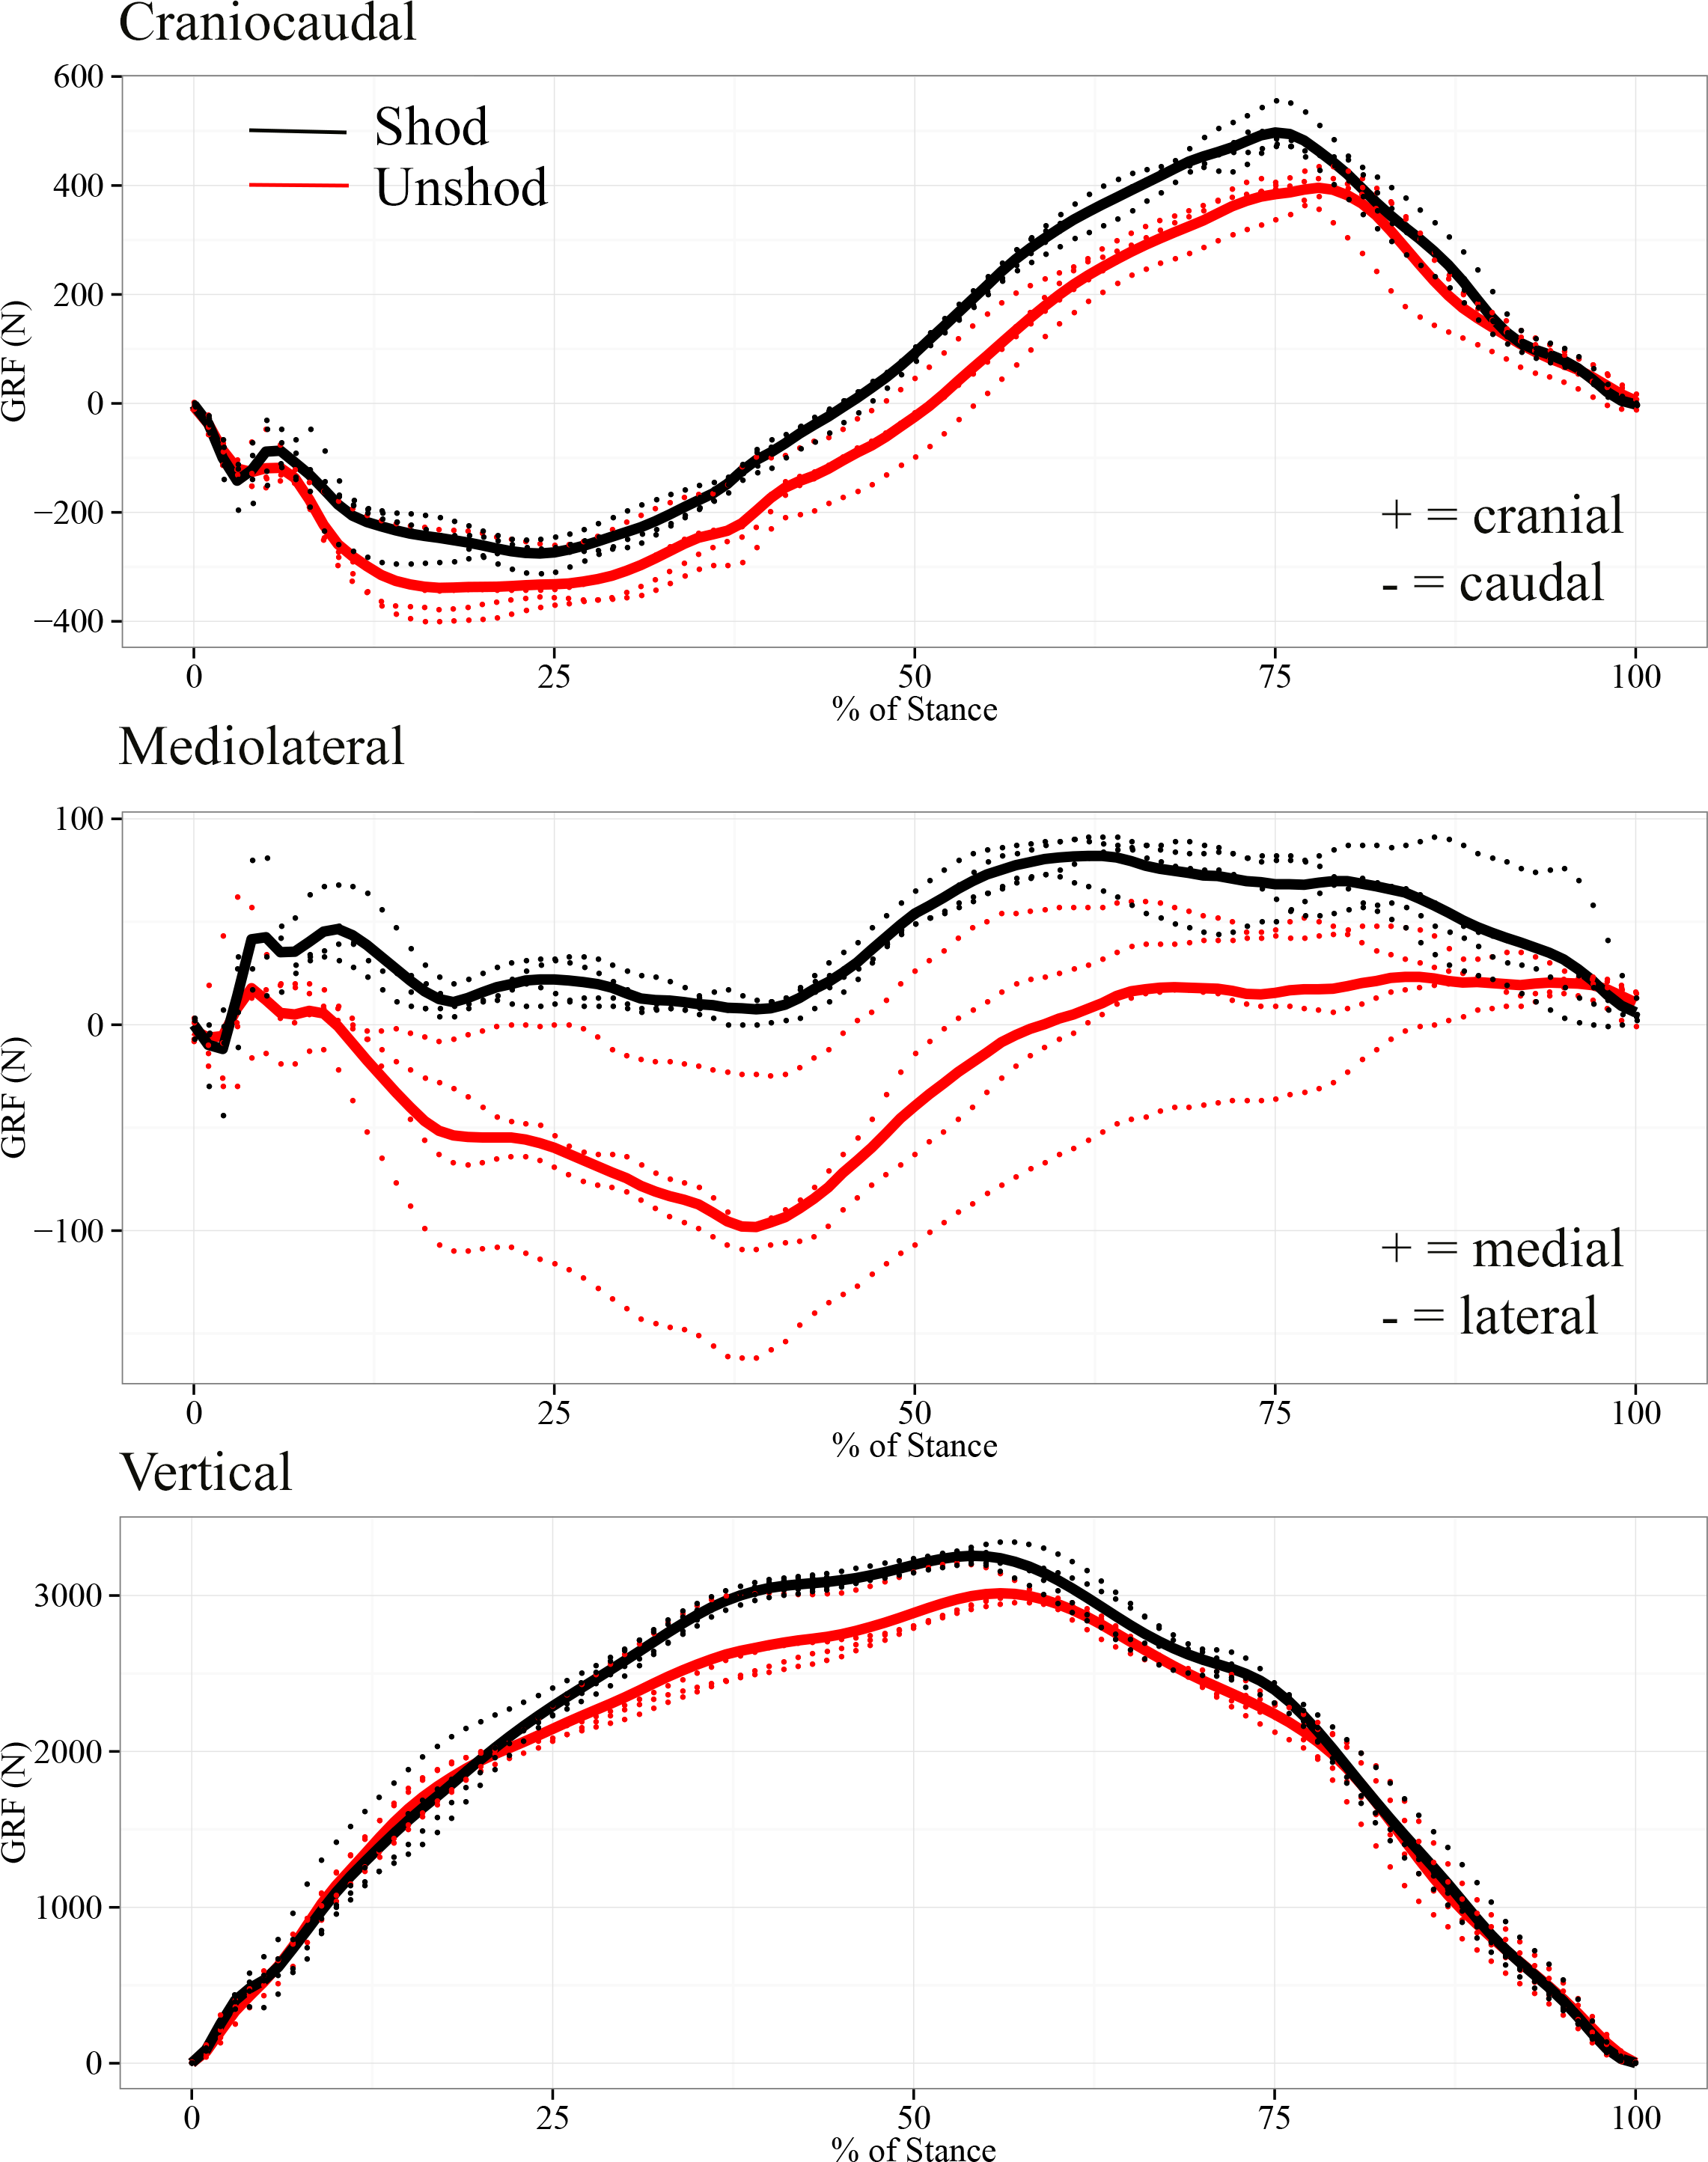 A preliminary case study of the effect of shoe-wearing on